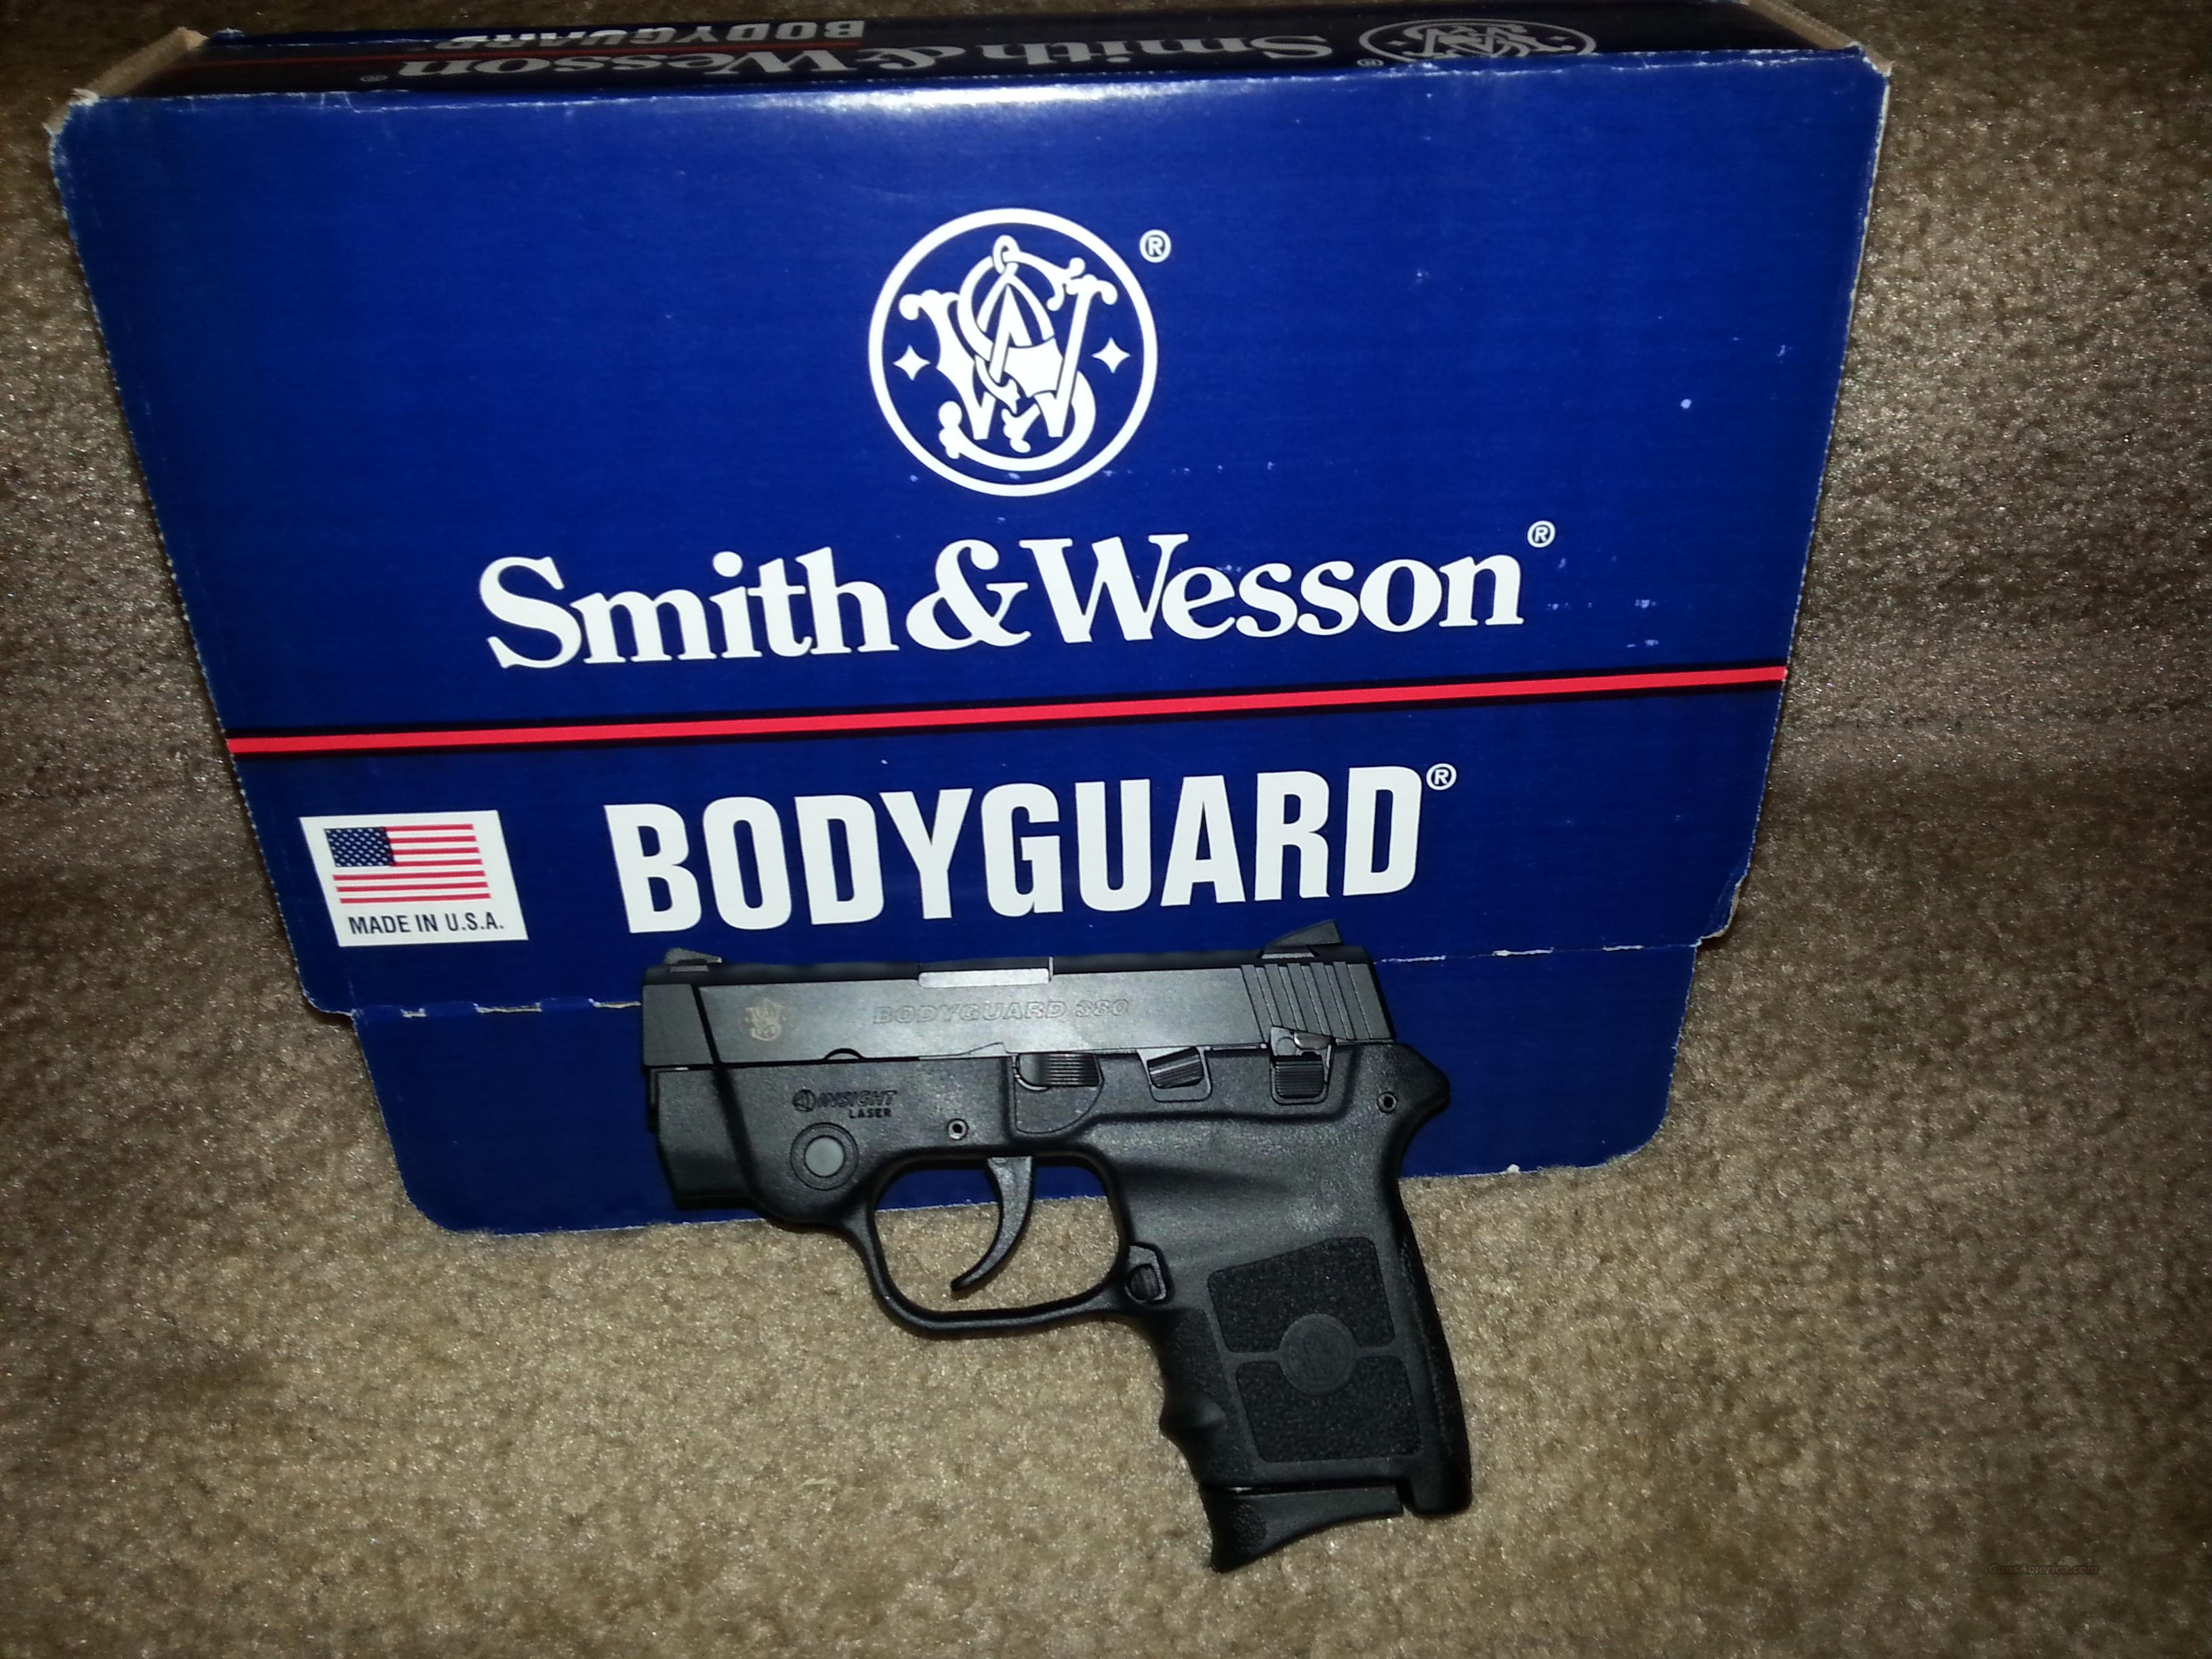 S & W Bodyguard 380 with Integrated Laser  Guns > Pistols > Smith & Wesson Pistols - Autos > Polymer Frame